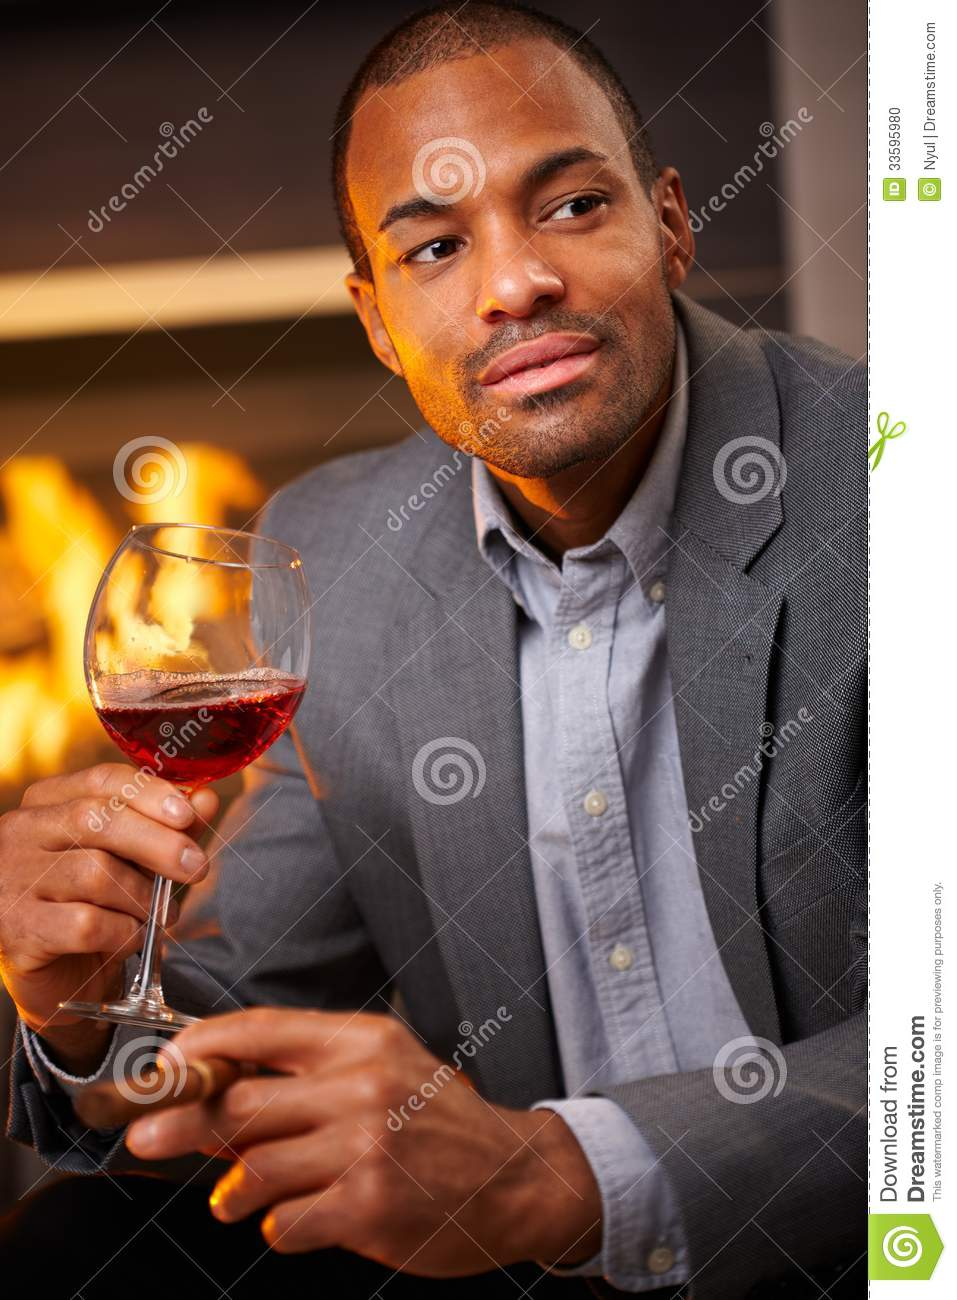 Handsome Black Man With Cigar And A Glass Of Wine Stock